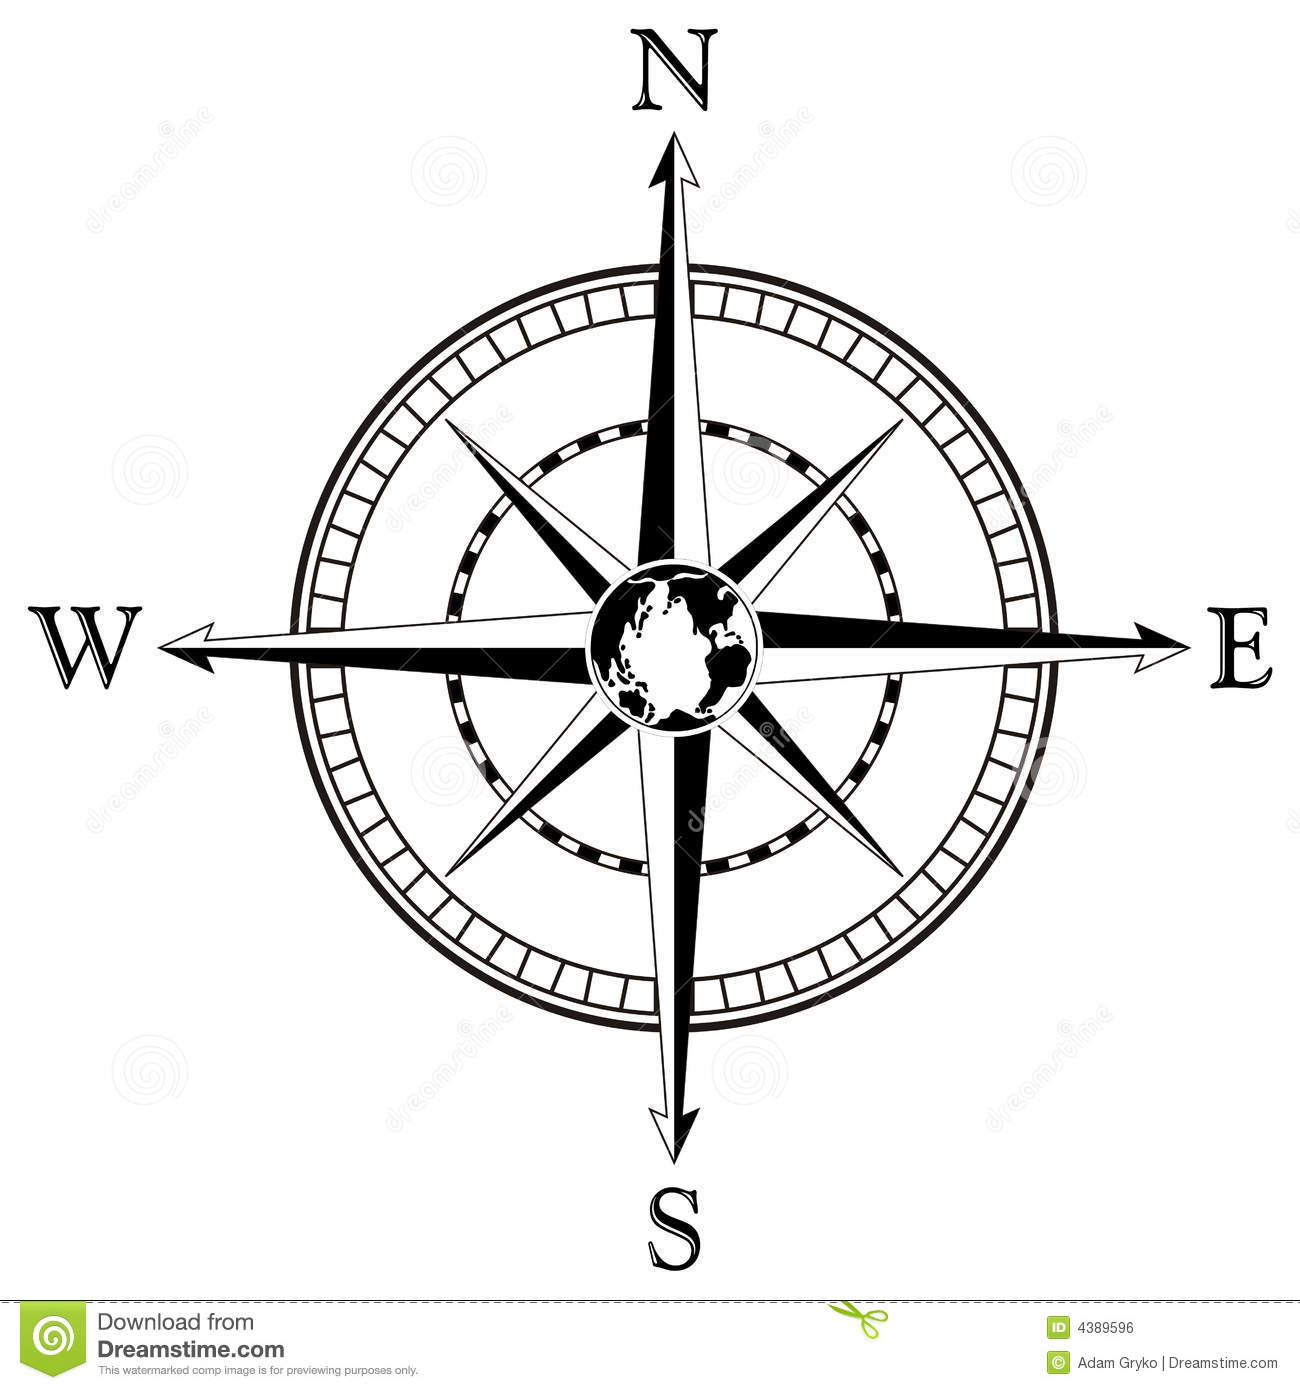 Compass rose illustration Compass Rose Clipart Black And White